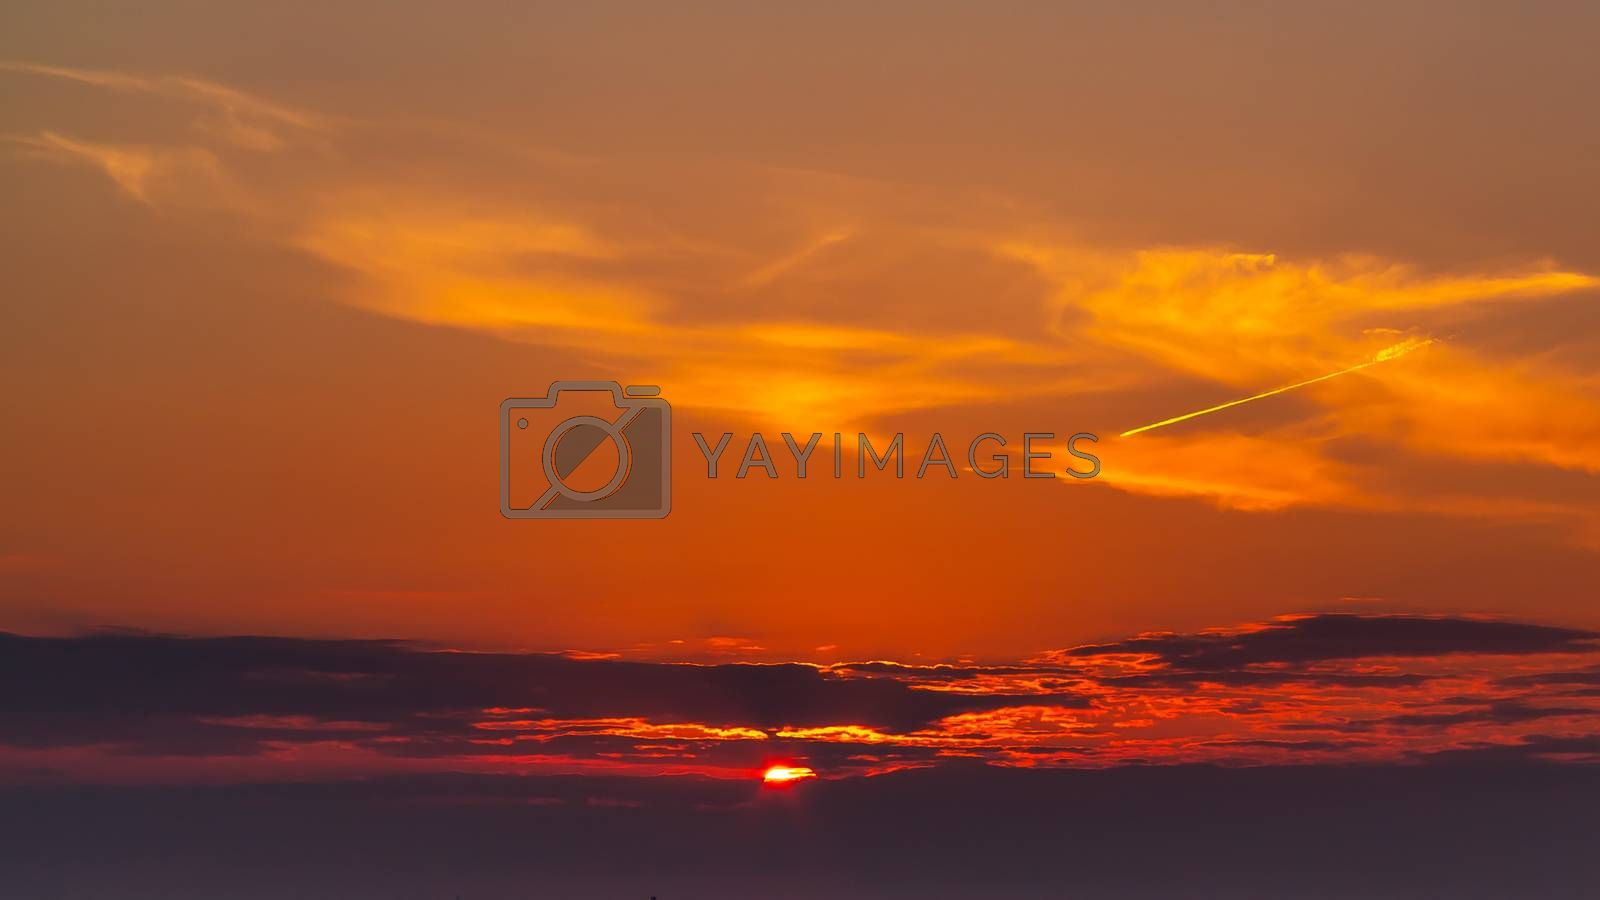 sky during a colorful, bright orange sunset, sun's rays make their way through the clouds by galsand